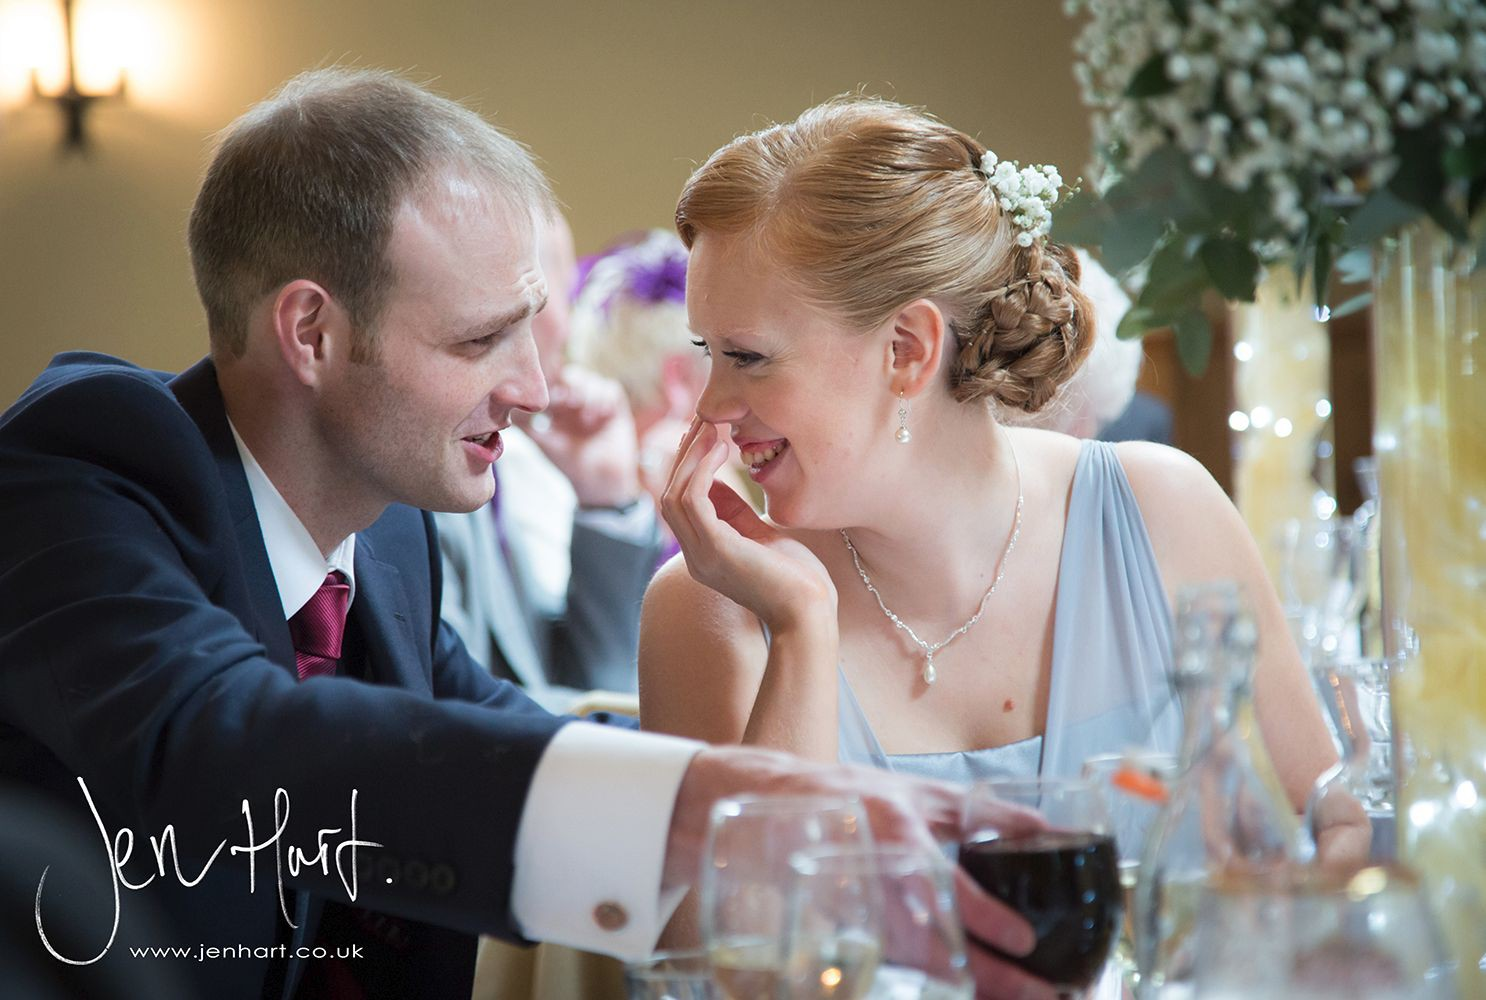 Photograph-Wedding-Whinstone-View_02May15_229